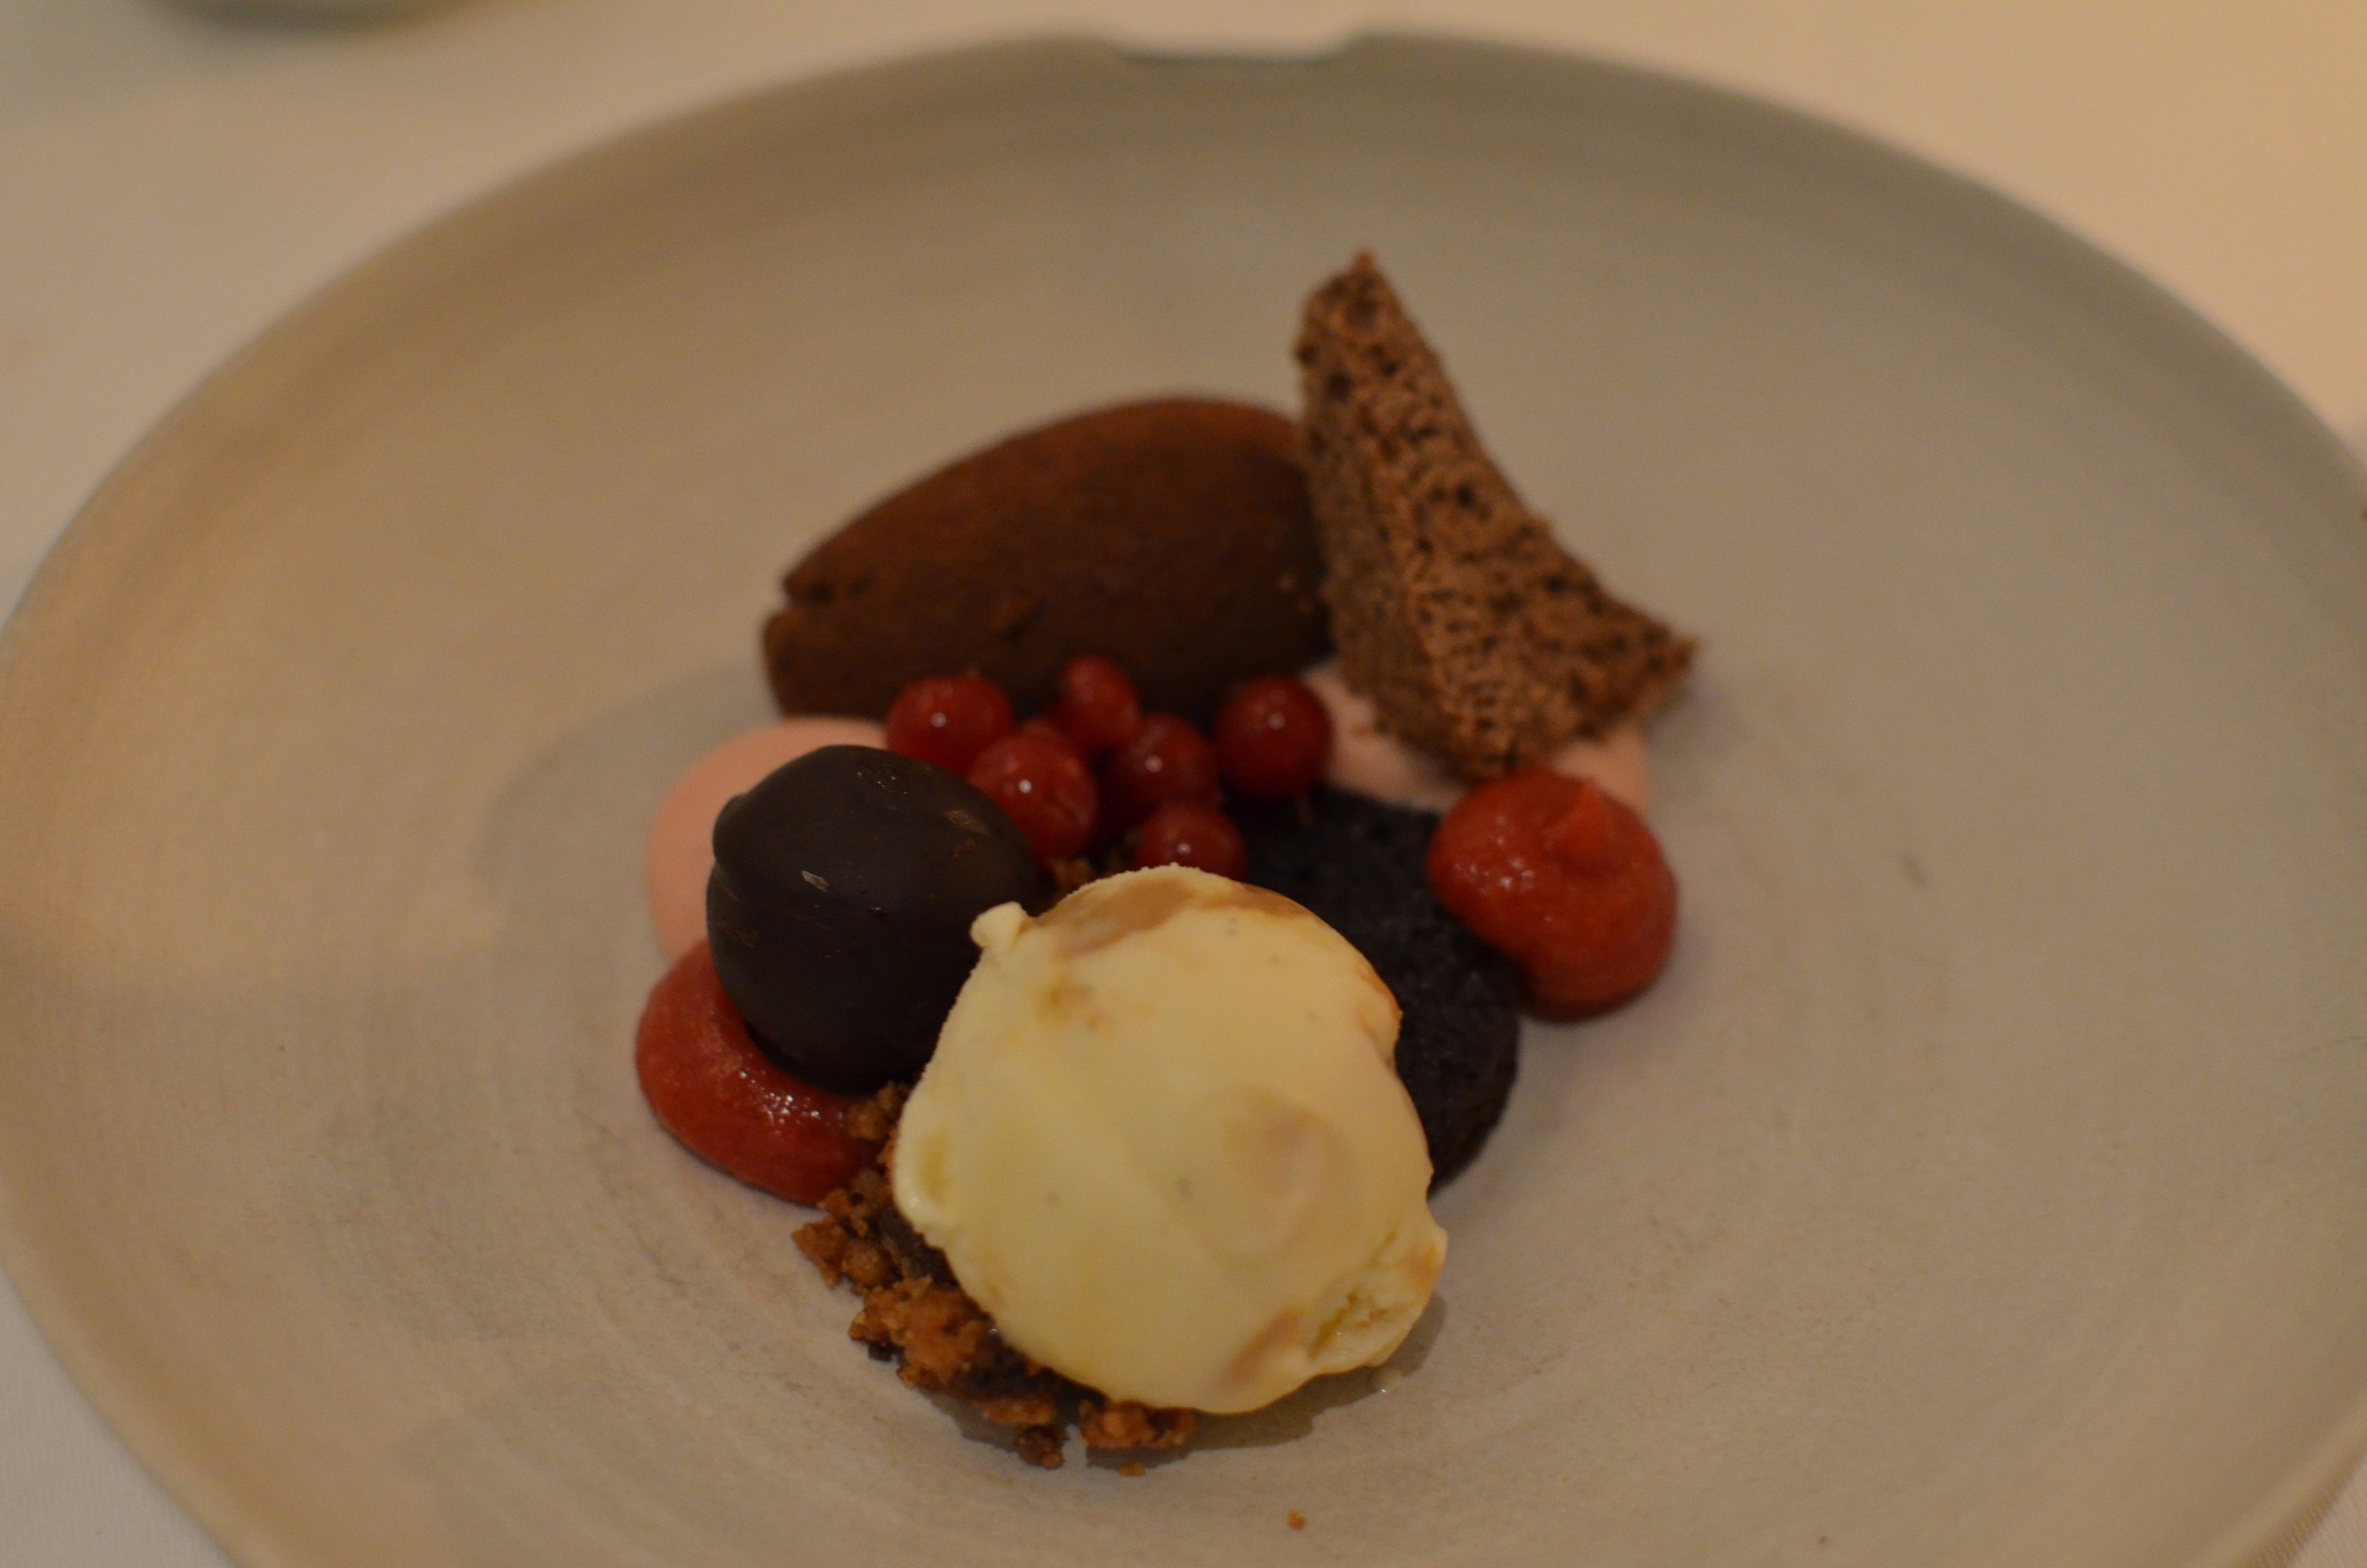 Chocolate mousse with red berries, dolce di latte ice-cream and sauce of hazelnut